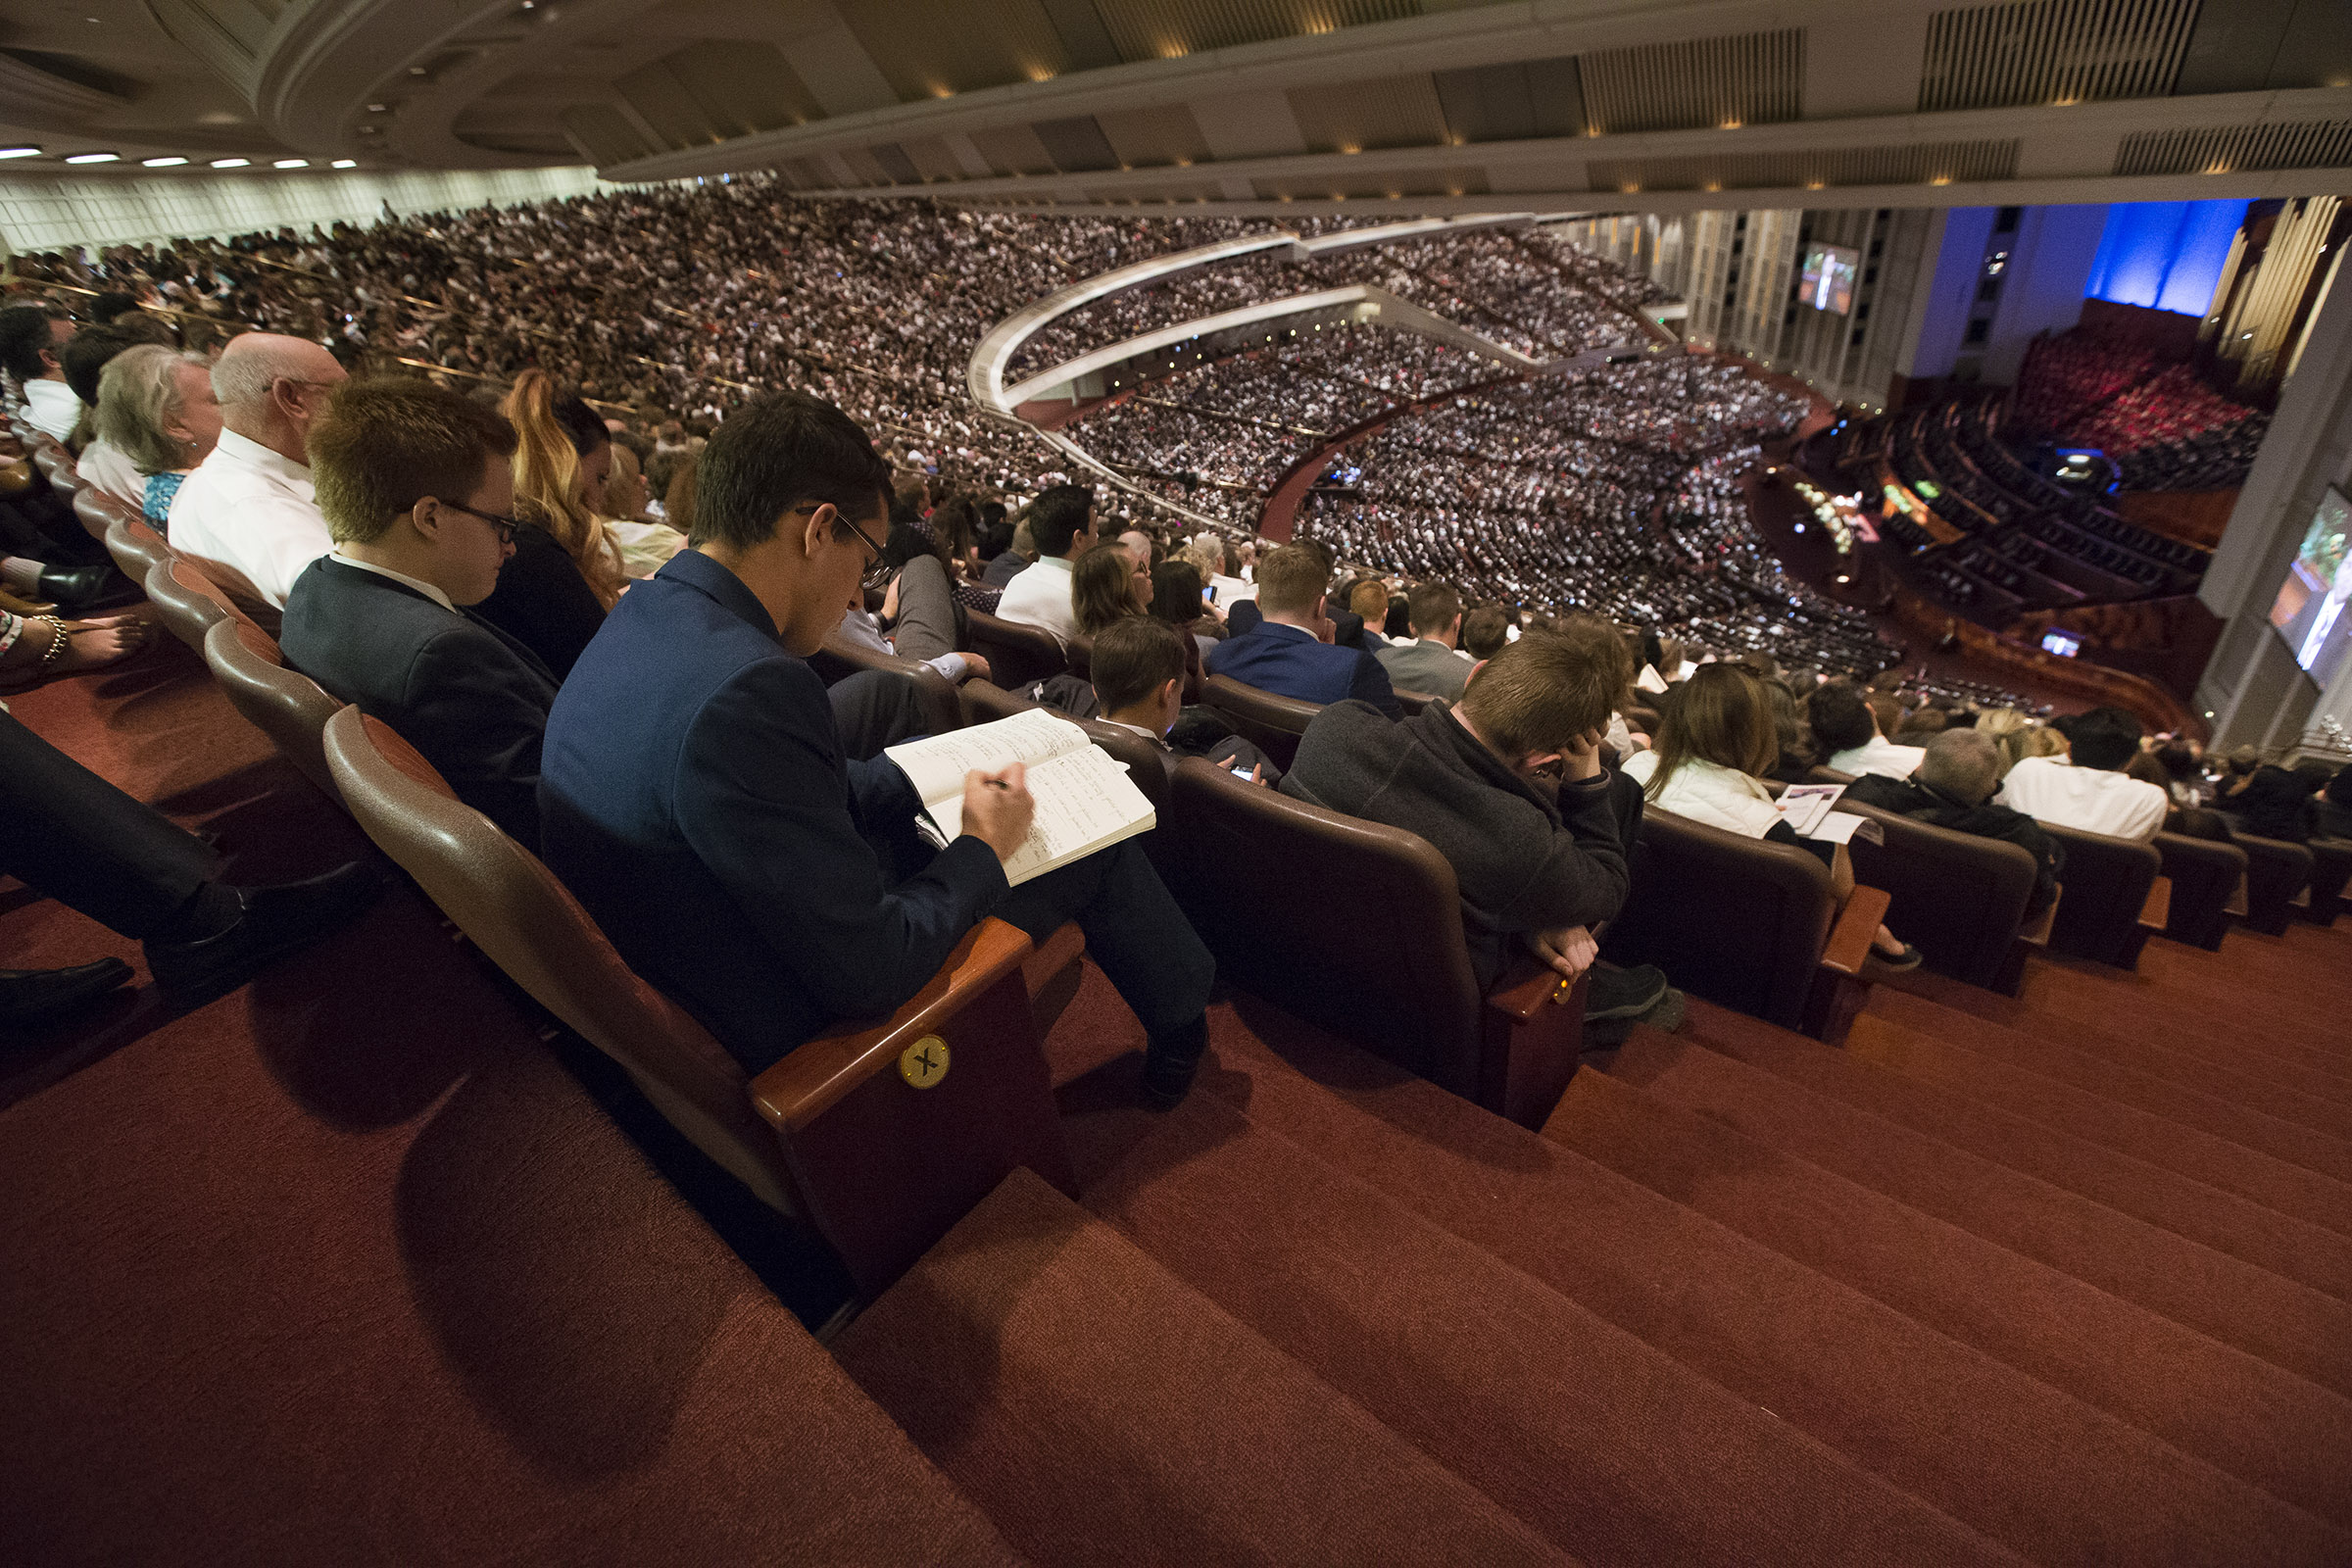 Conferencegoers listen to the talks during the 188th Annual General Conference of The Church of Jesus Christ of Latter-day Saints in the Conference Center in Salt Lake City on Sunday, April 1, 2018.